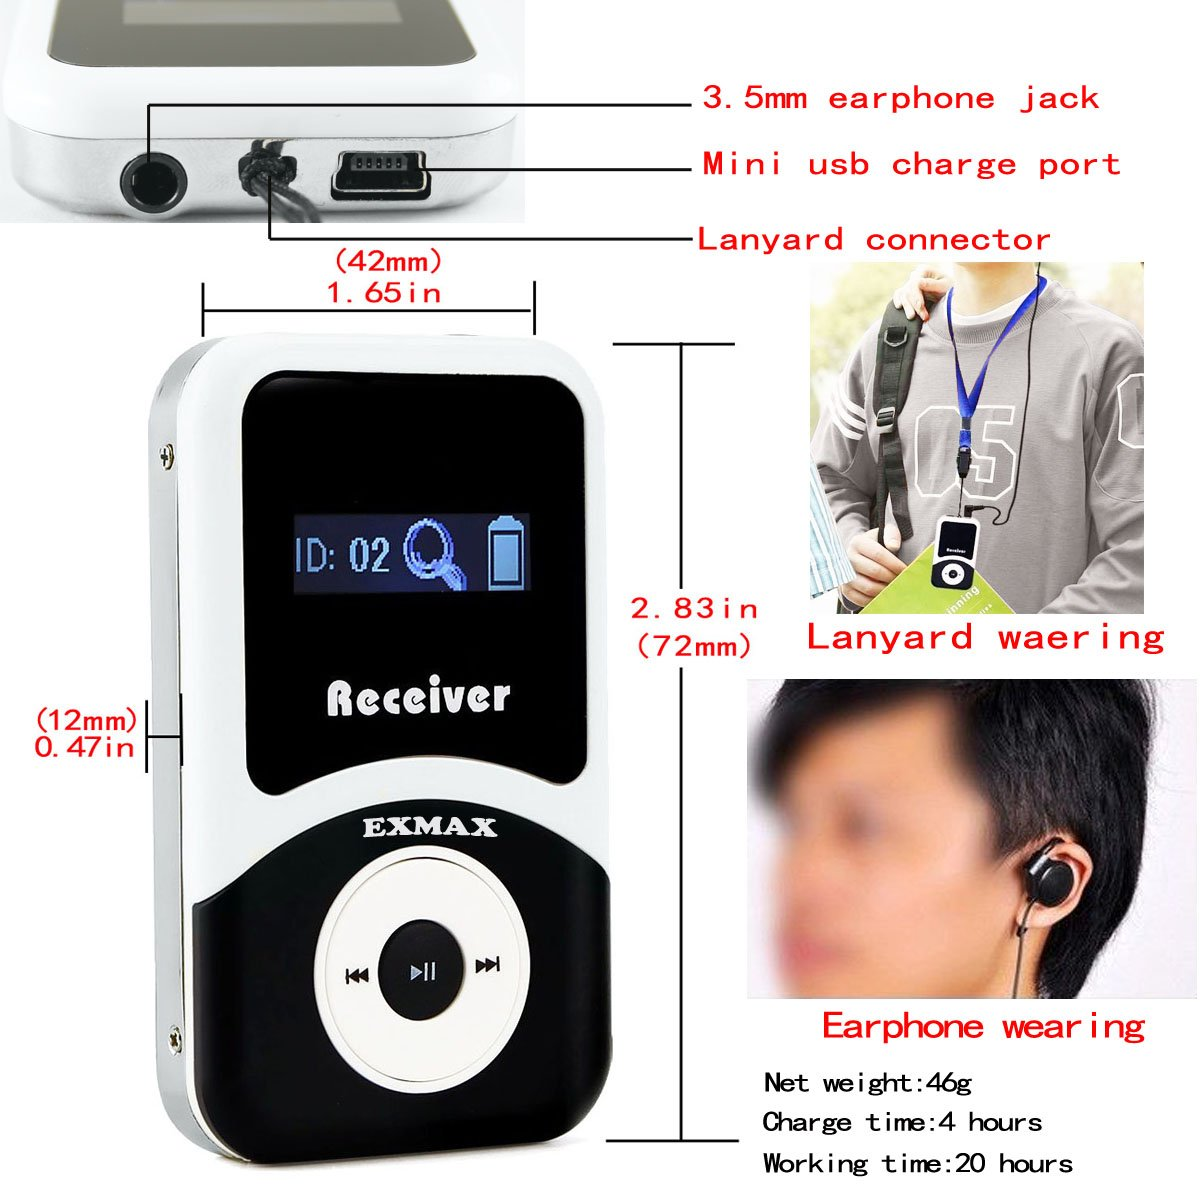 EXMAX ATG-100T 195-230MHz Wireless Tour Guide Monitoring System Microphone Earphone Headset for Church Translate Teaching Conference Travel Square Dance(1 Transmitter 8 Receivers) by EXMAX (Image #3)